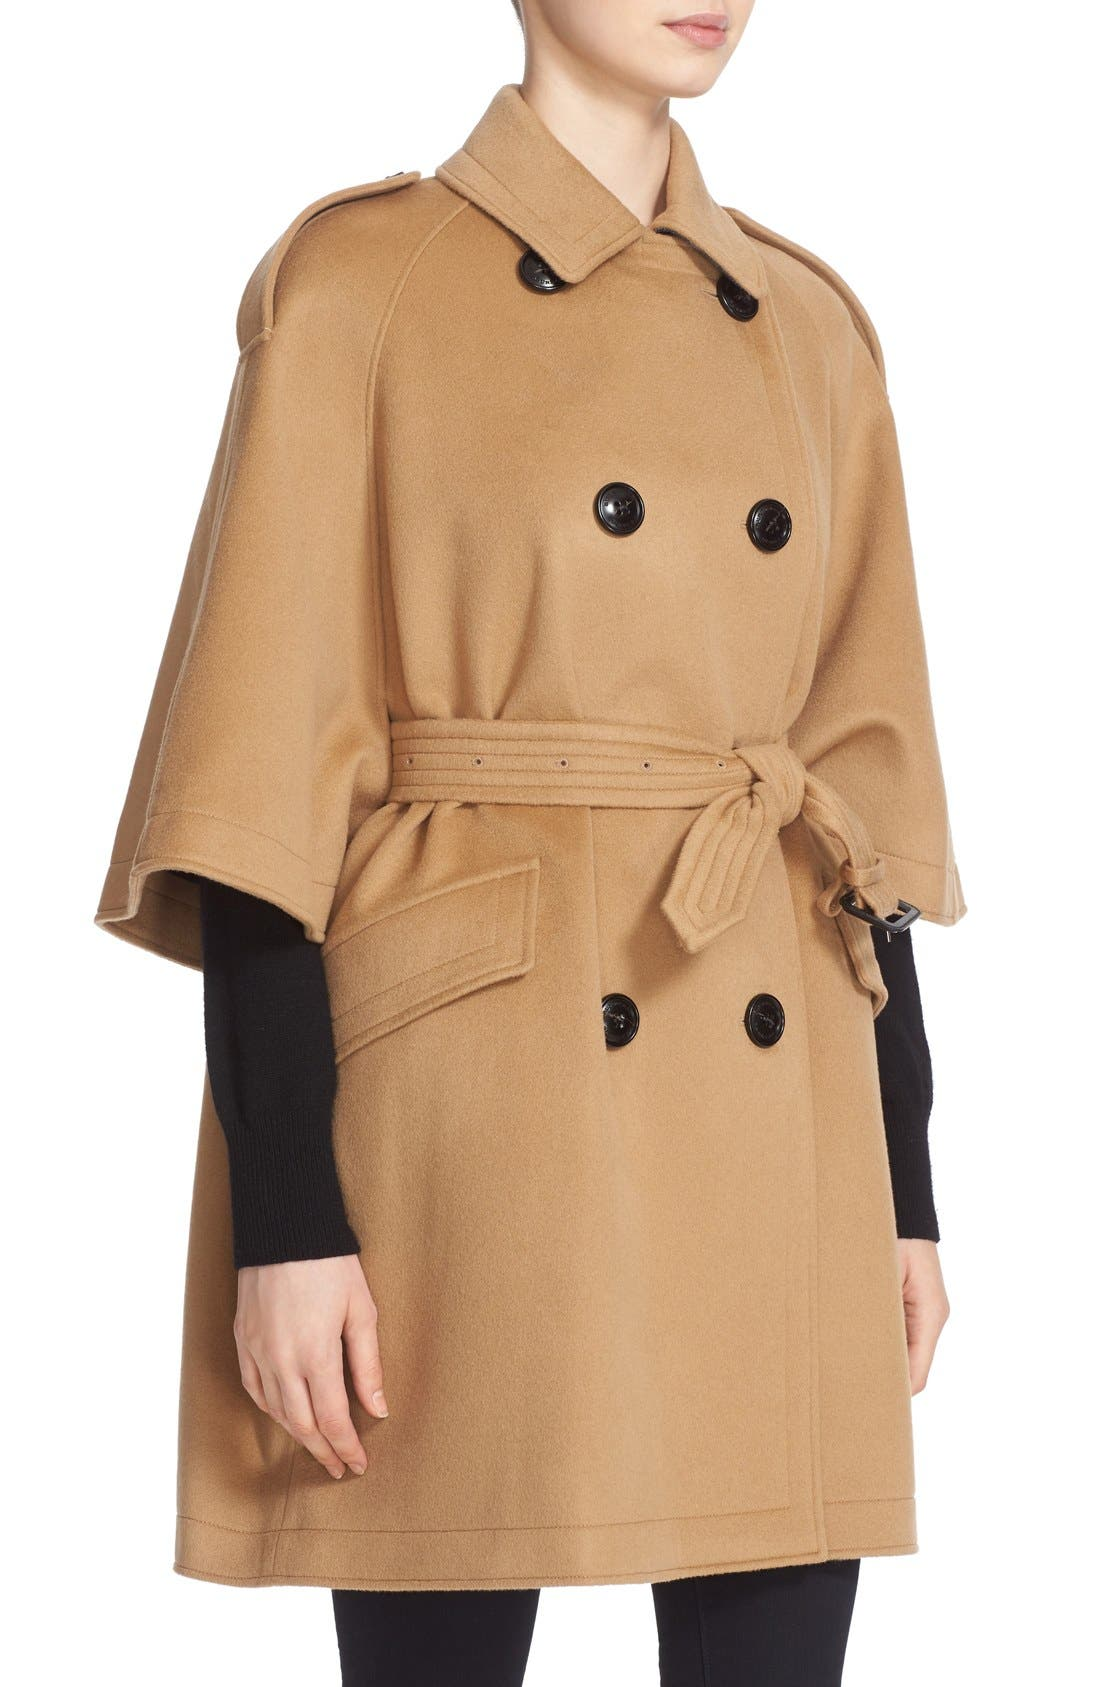 Dennington Trench Cape Coat,                             Alternate thumbnail 7, color,                             231